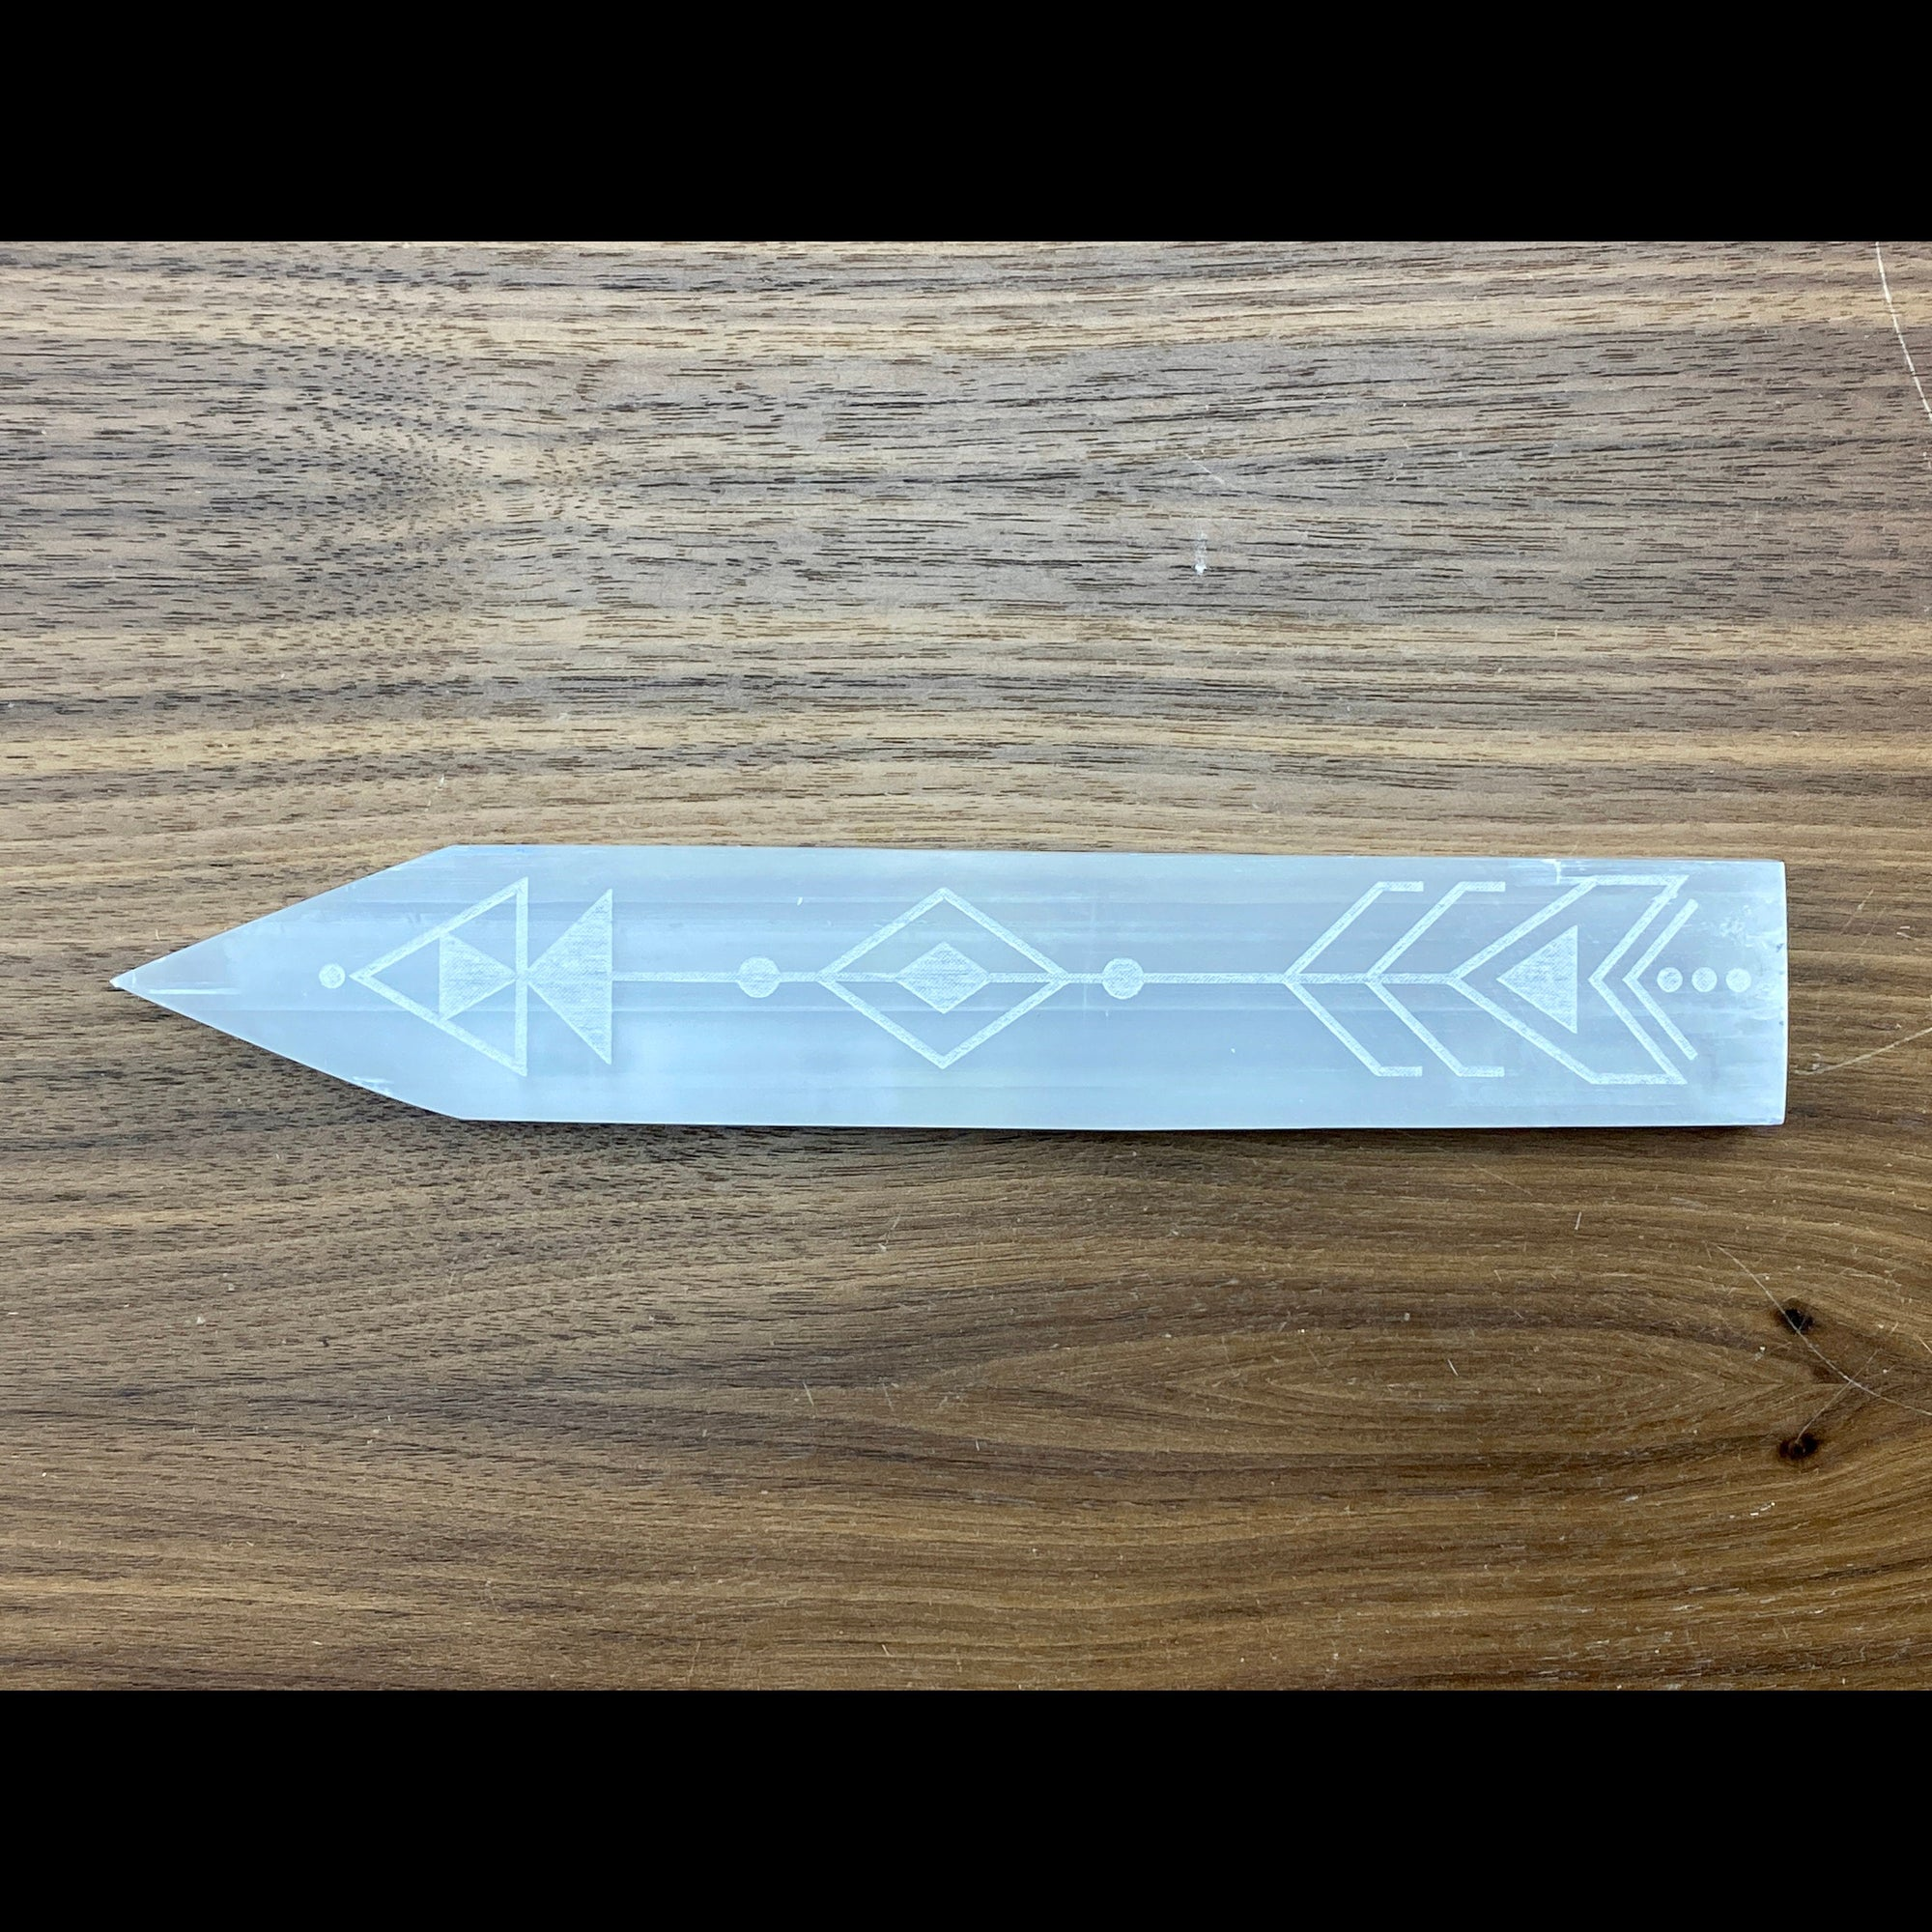 Selenite Engraved Arrows Charging Platform #2